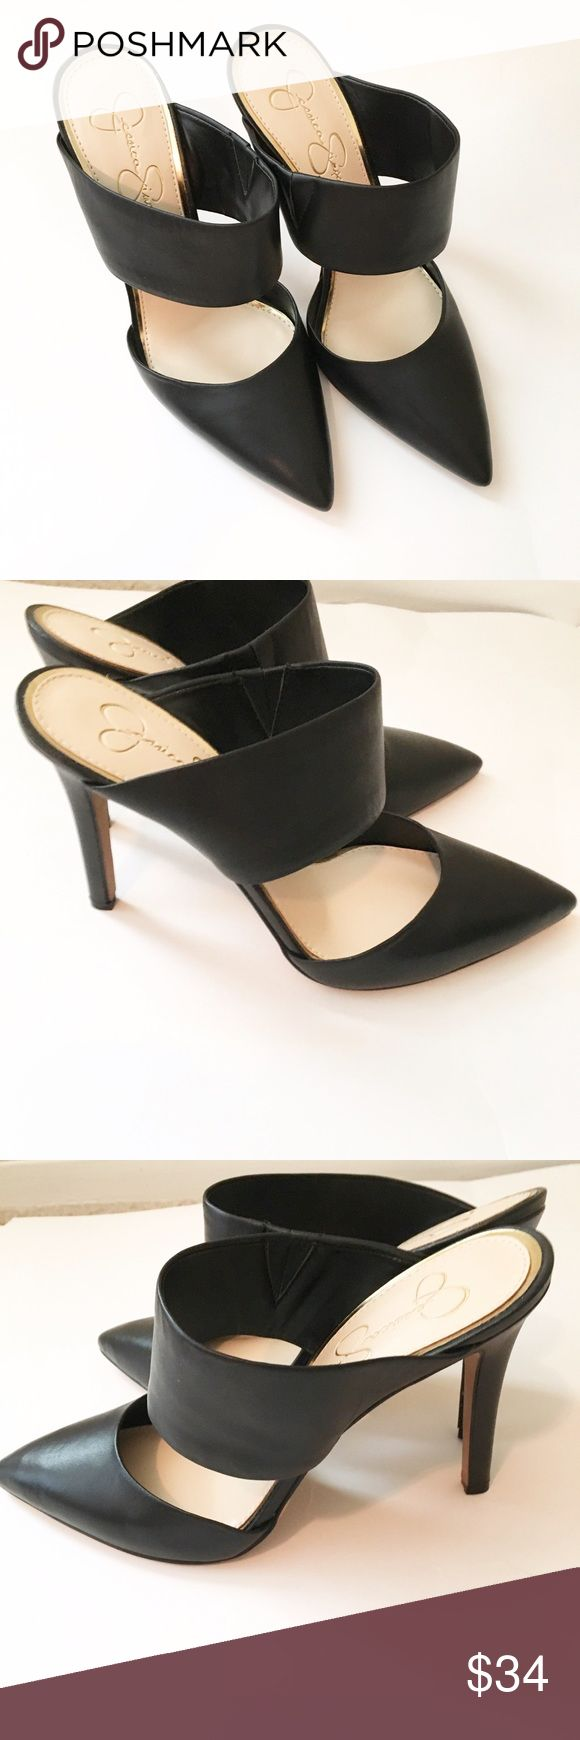 """Jessica Simpson Black Pointed Toe Heels These heels are a staple for any closet! They are perfect for the office or for going out. EUC, soles are clean as shown. Only flaw - a small nick on the back of one of the heels as shown. Approx. 4"""" heel height. Open to offers or bundle and save 15%! Jessica Simpson Shoes Heels"""